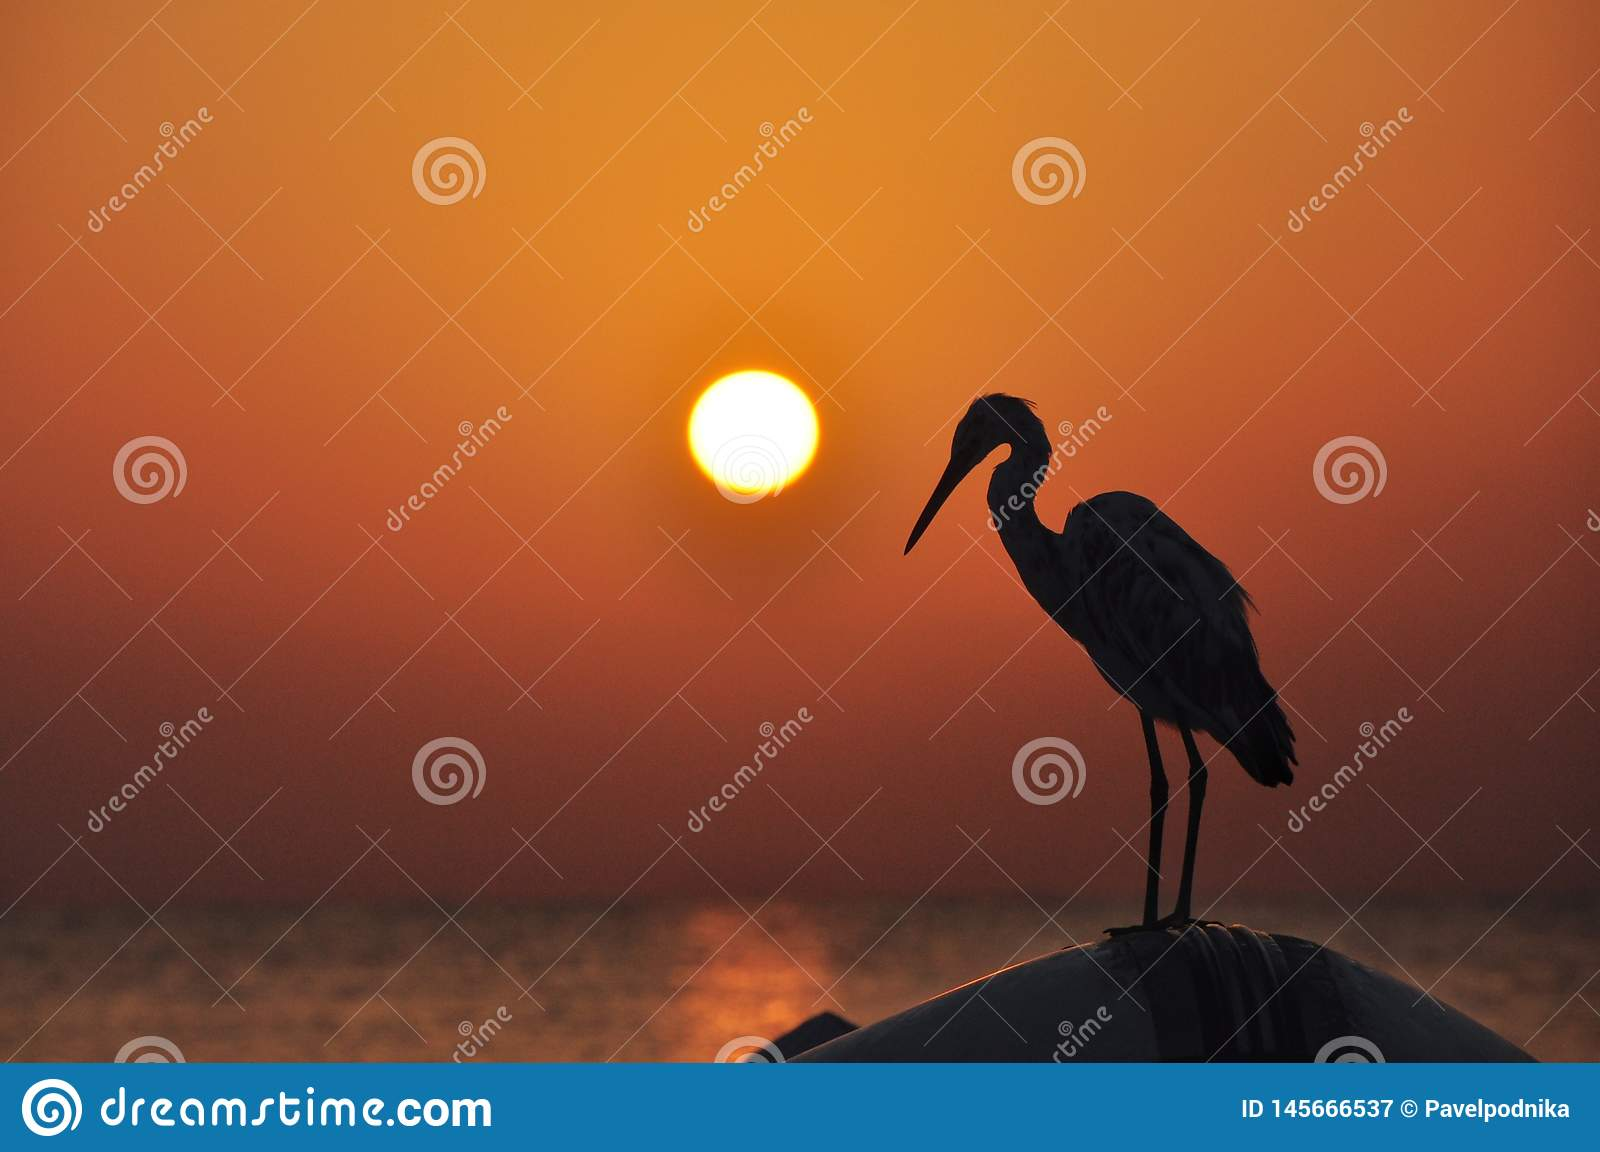 The sun setting over the horizon of the sea playing on the waves of the sea and the bird sitting on the boat